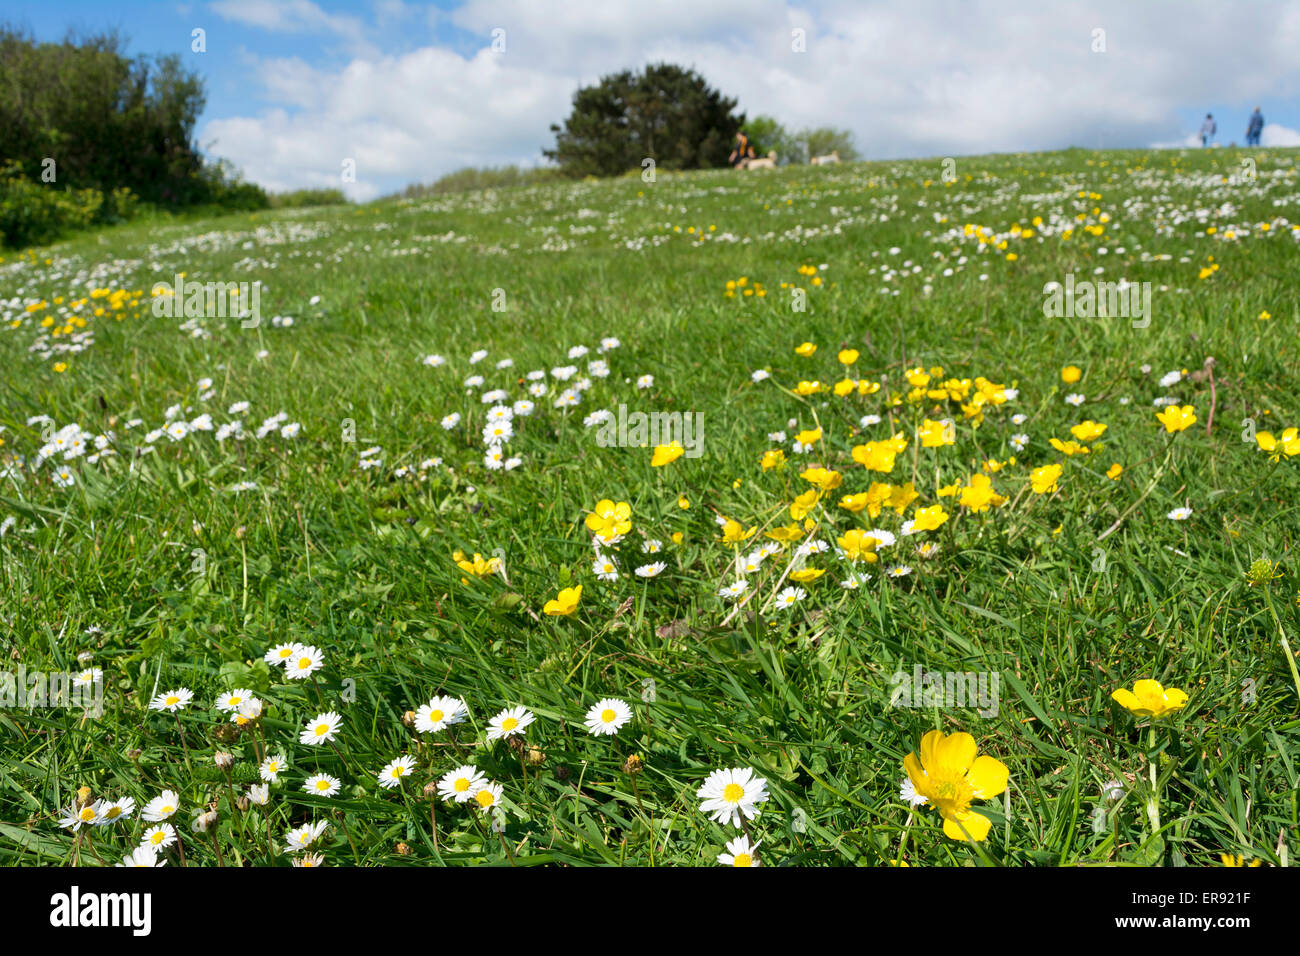 a field of daisies and buttercups - Stock Image